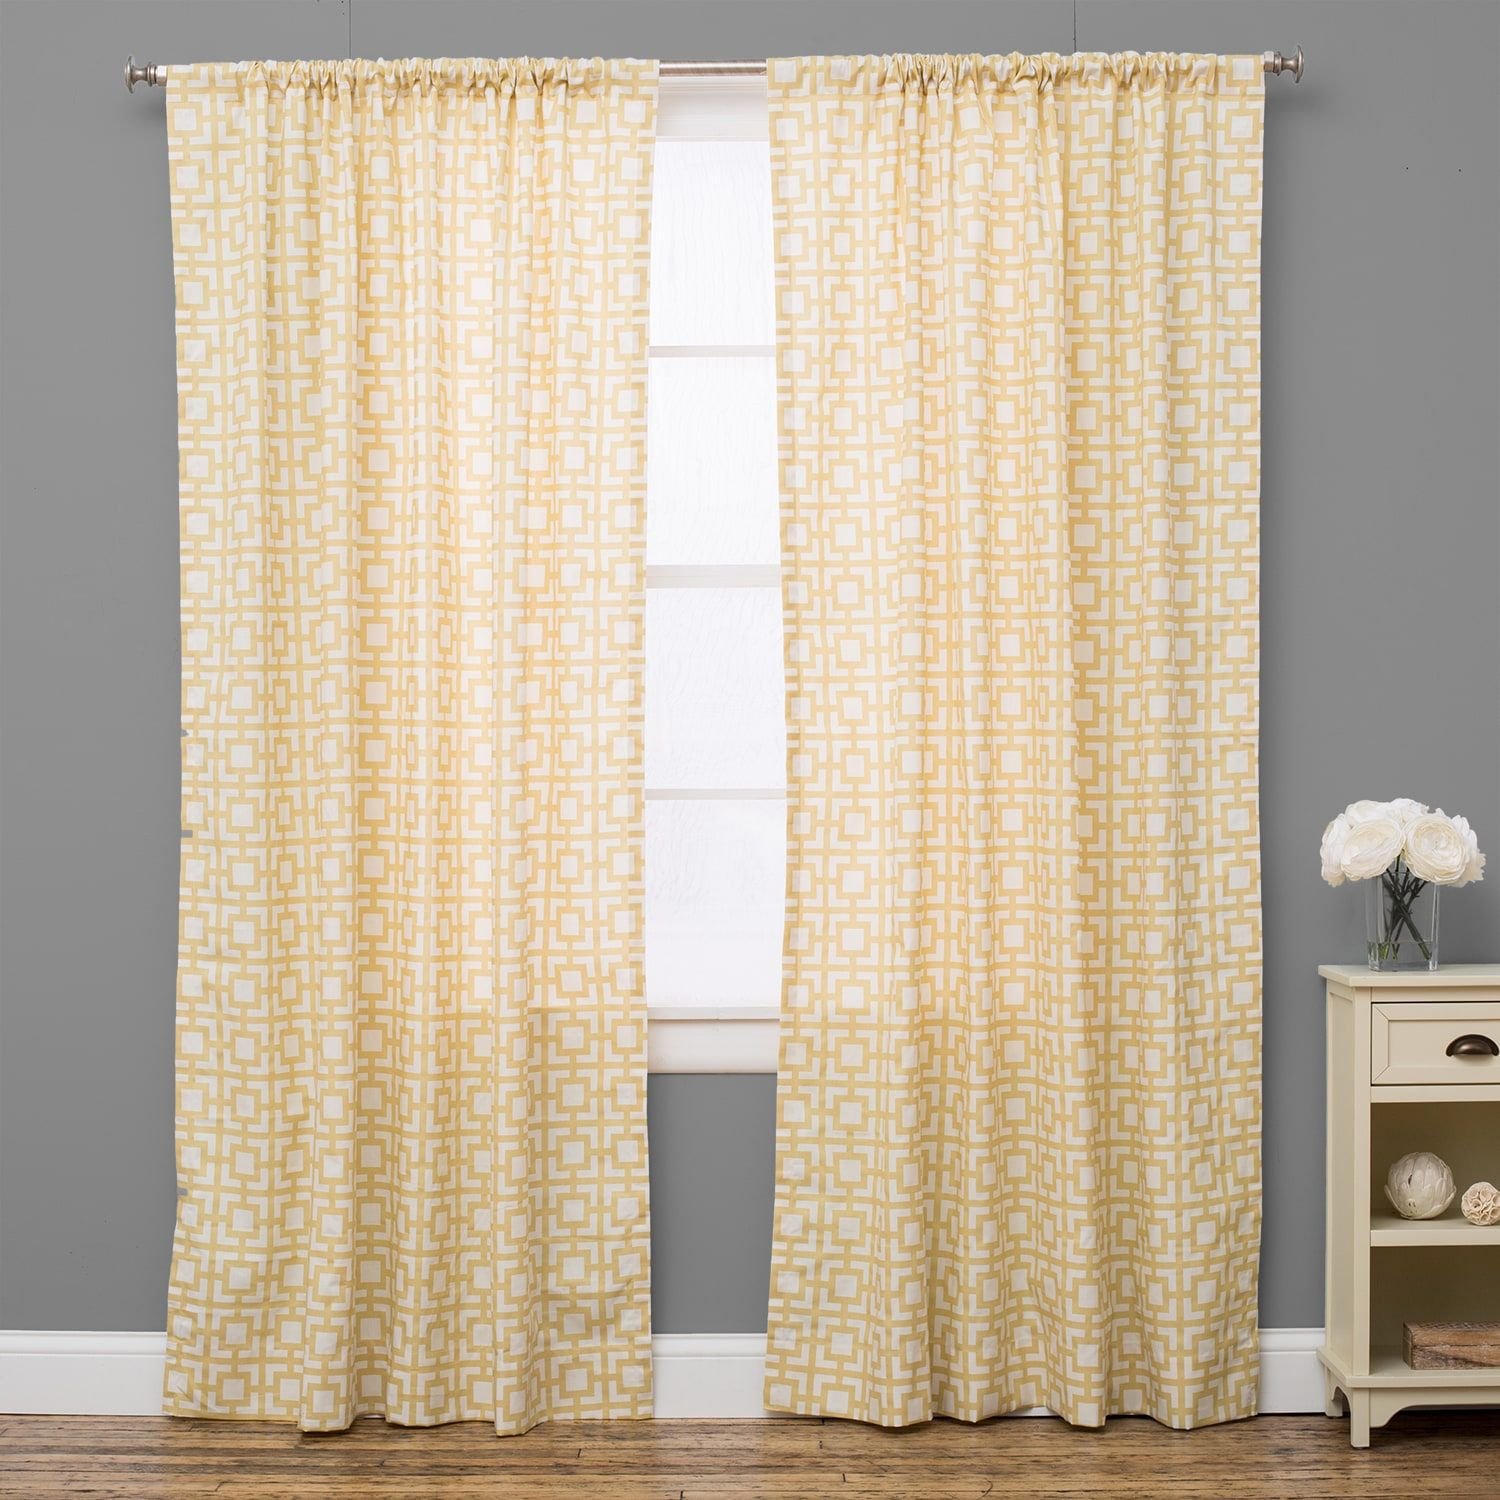 curtain drapes creamy matching curtains itm beige with blockout fabric net valance pelmet blackout swag sheer ivory